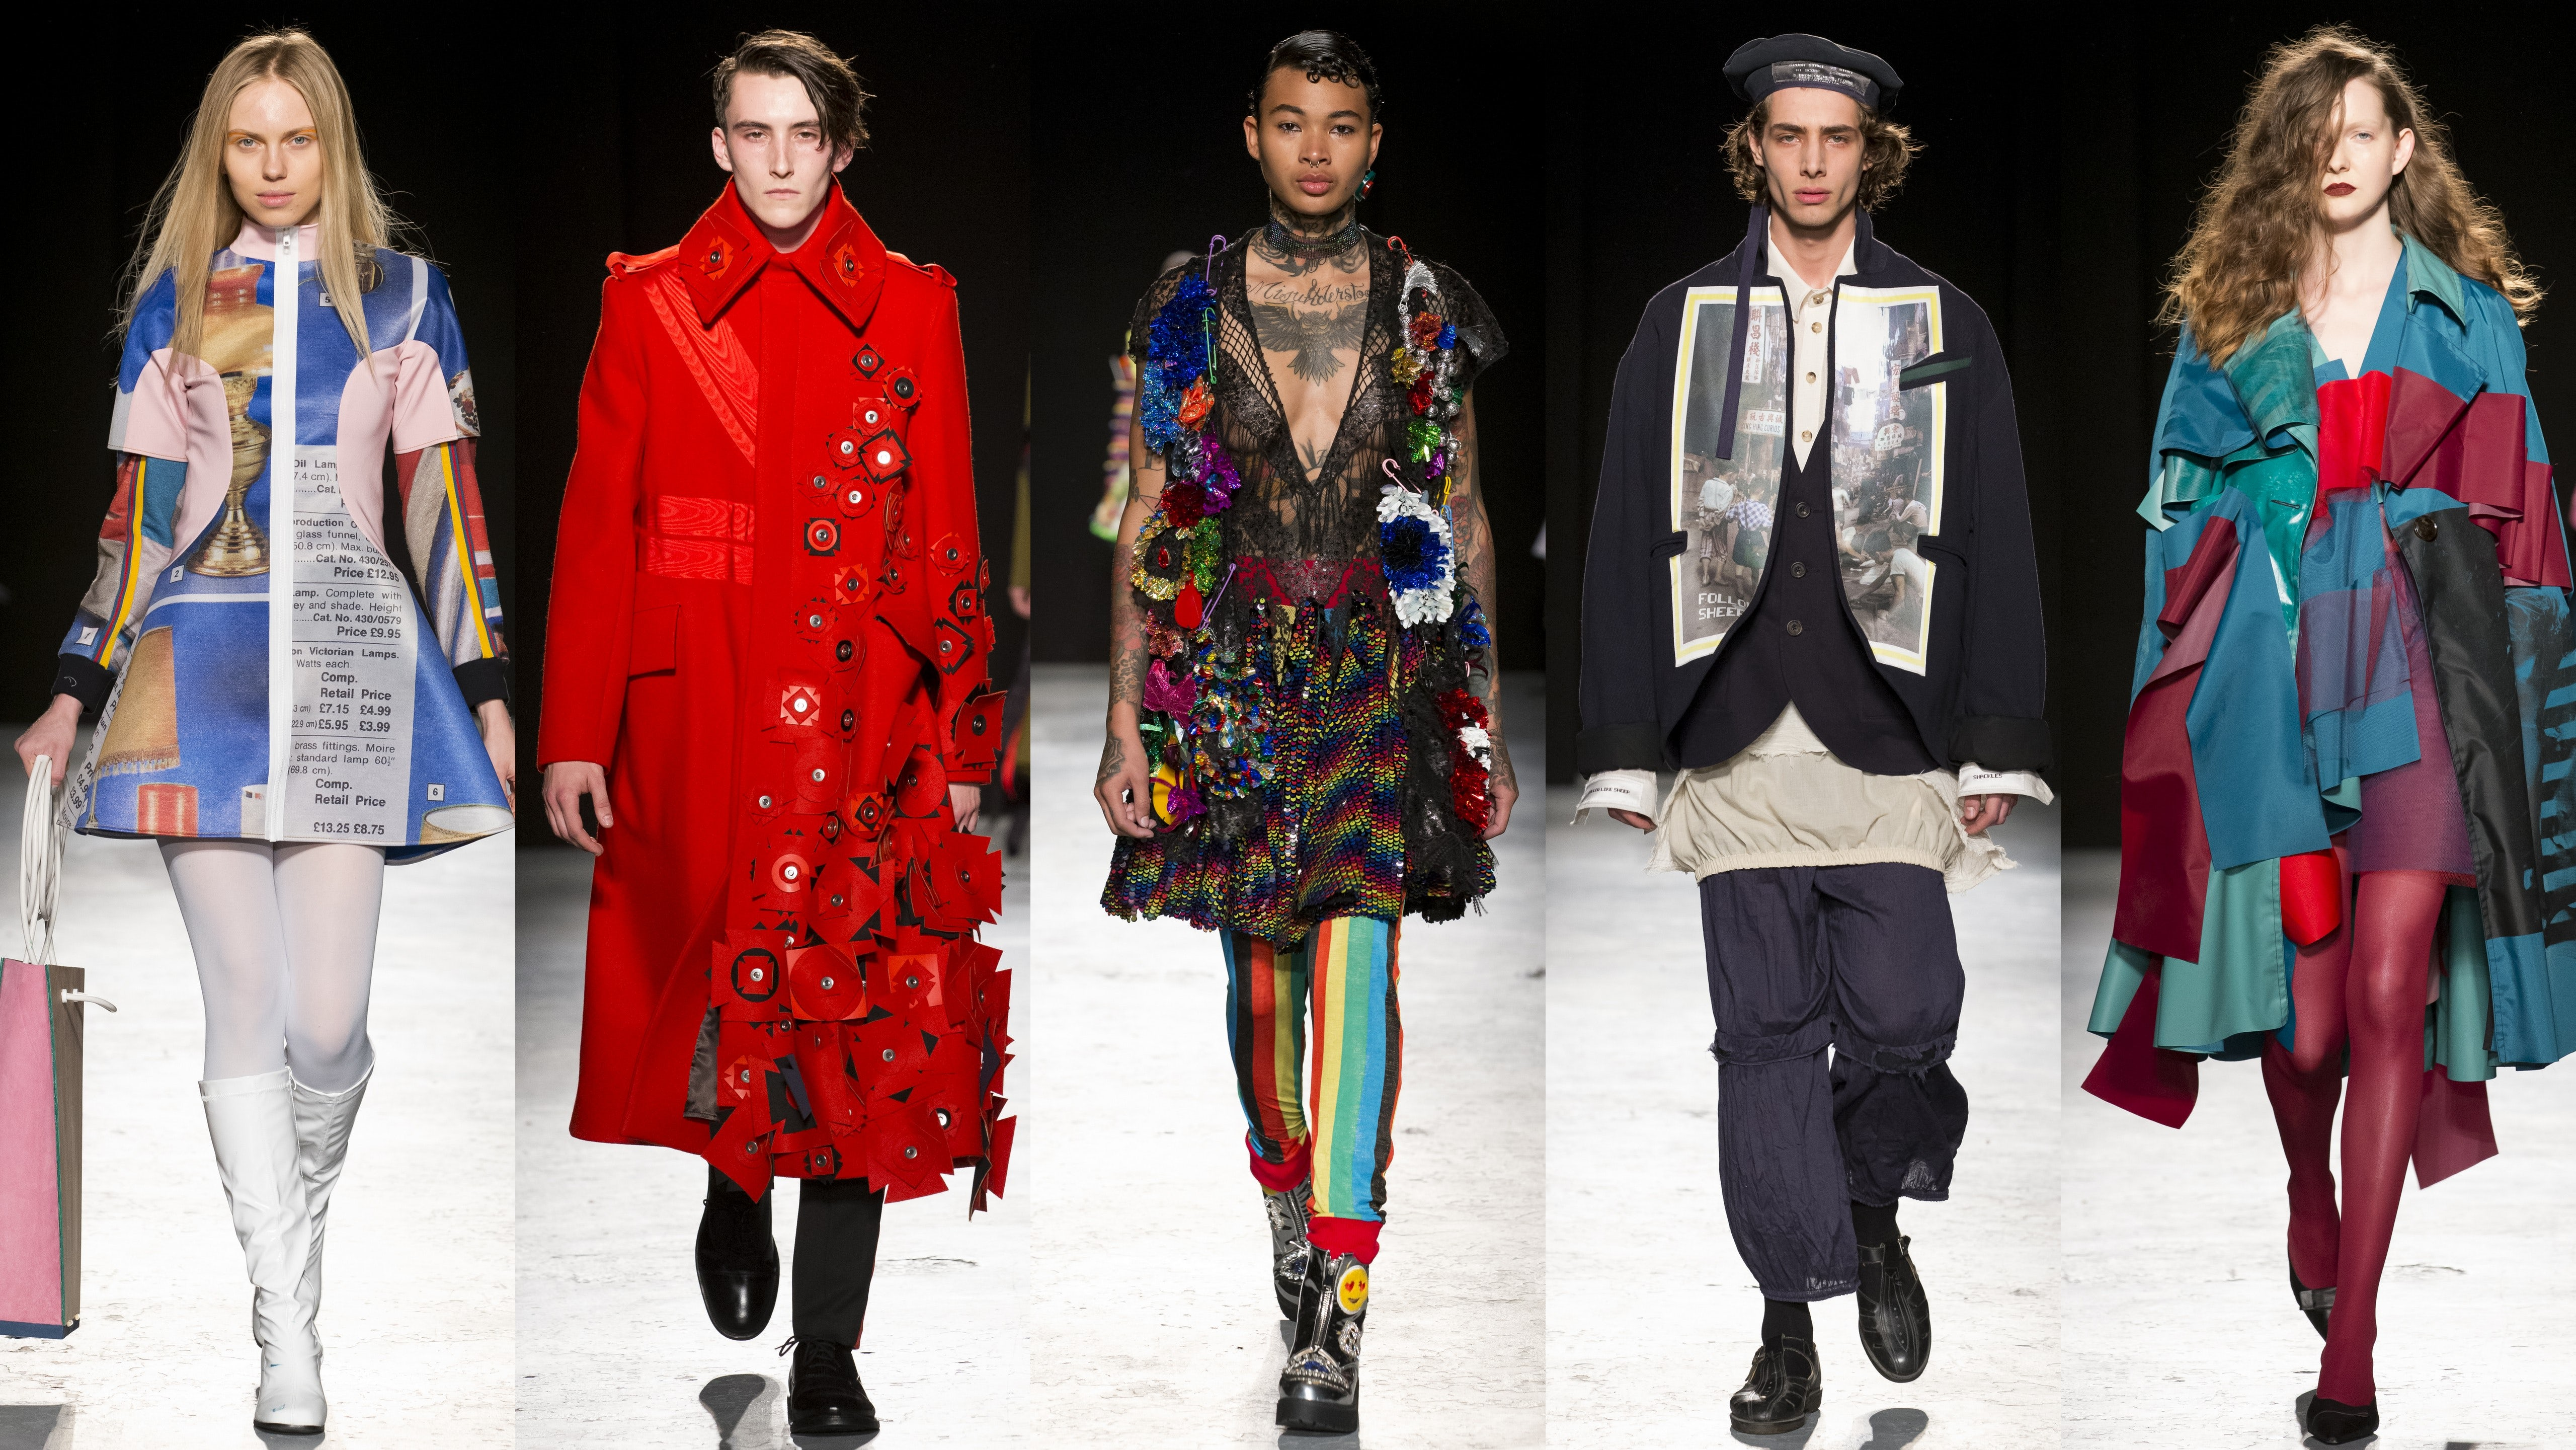 2017 Westminster fashion runway | Source: Westminster